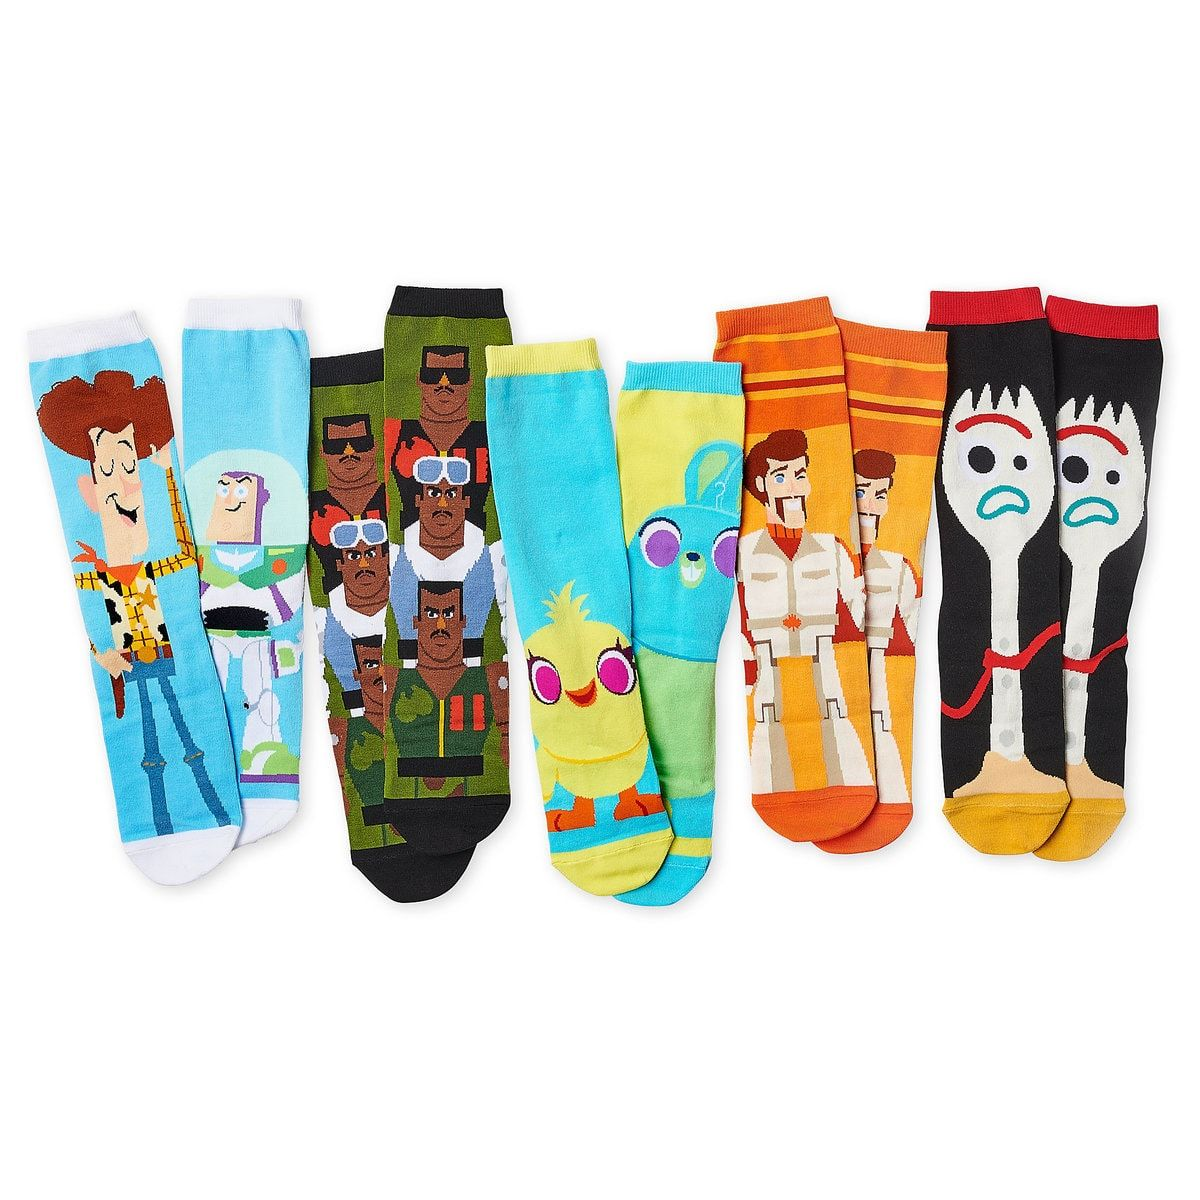 Toy Story 4 Sock Set For Adults 5 Pack Shopdisney Mickey And Friends Disney Store Toys Toy Story